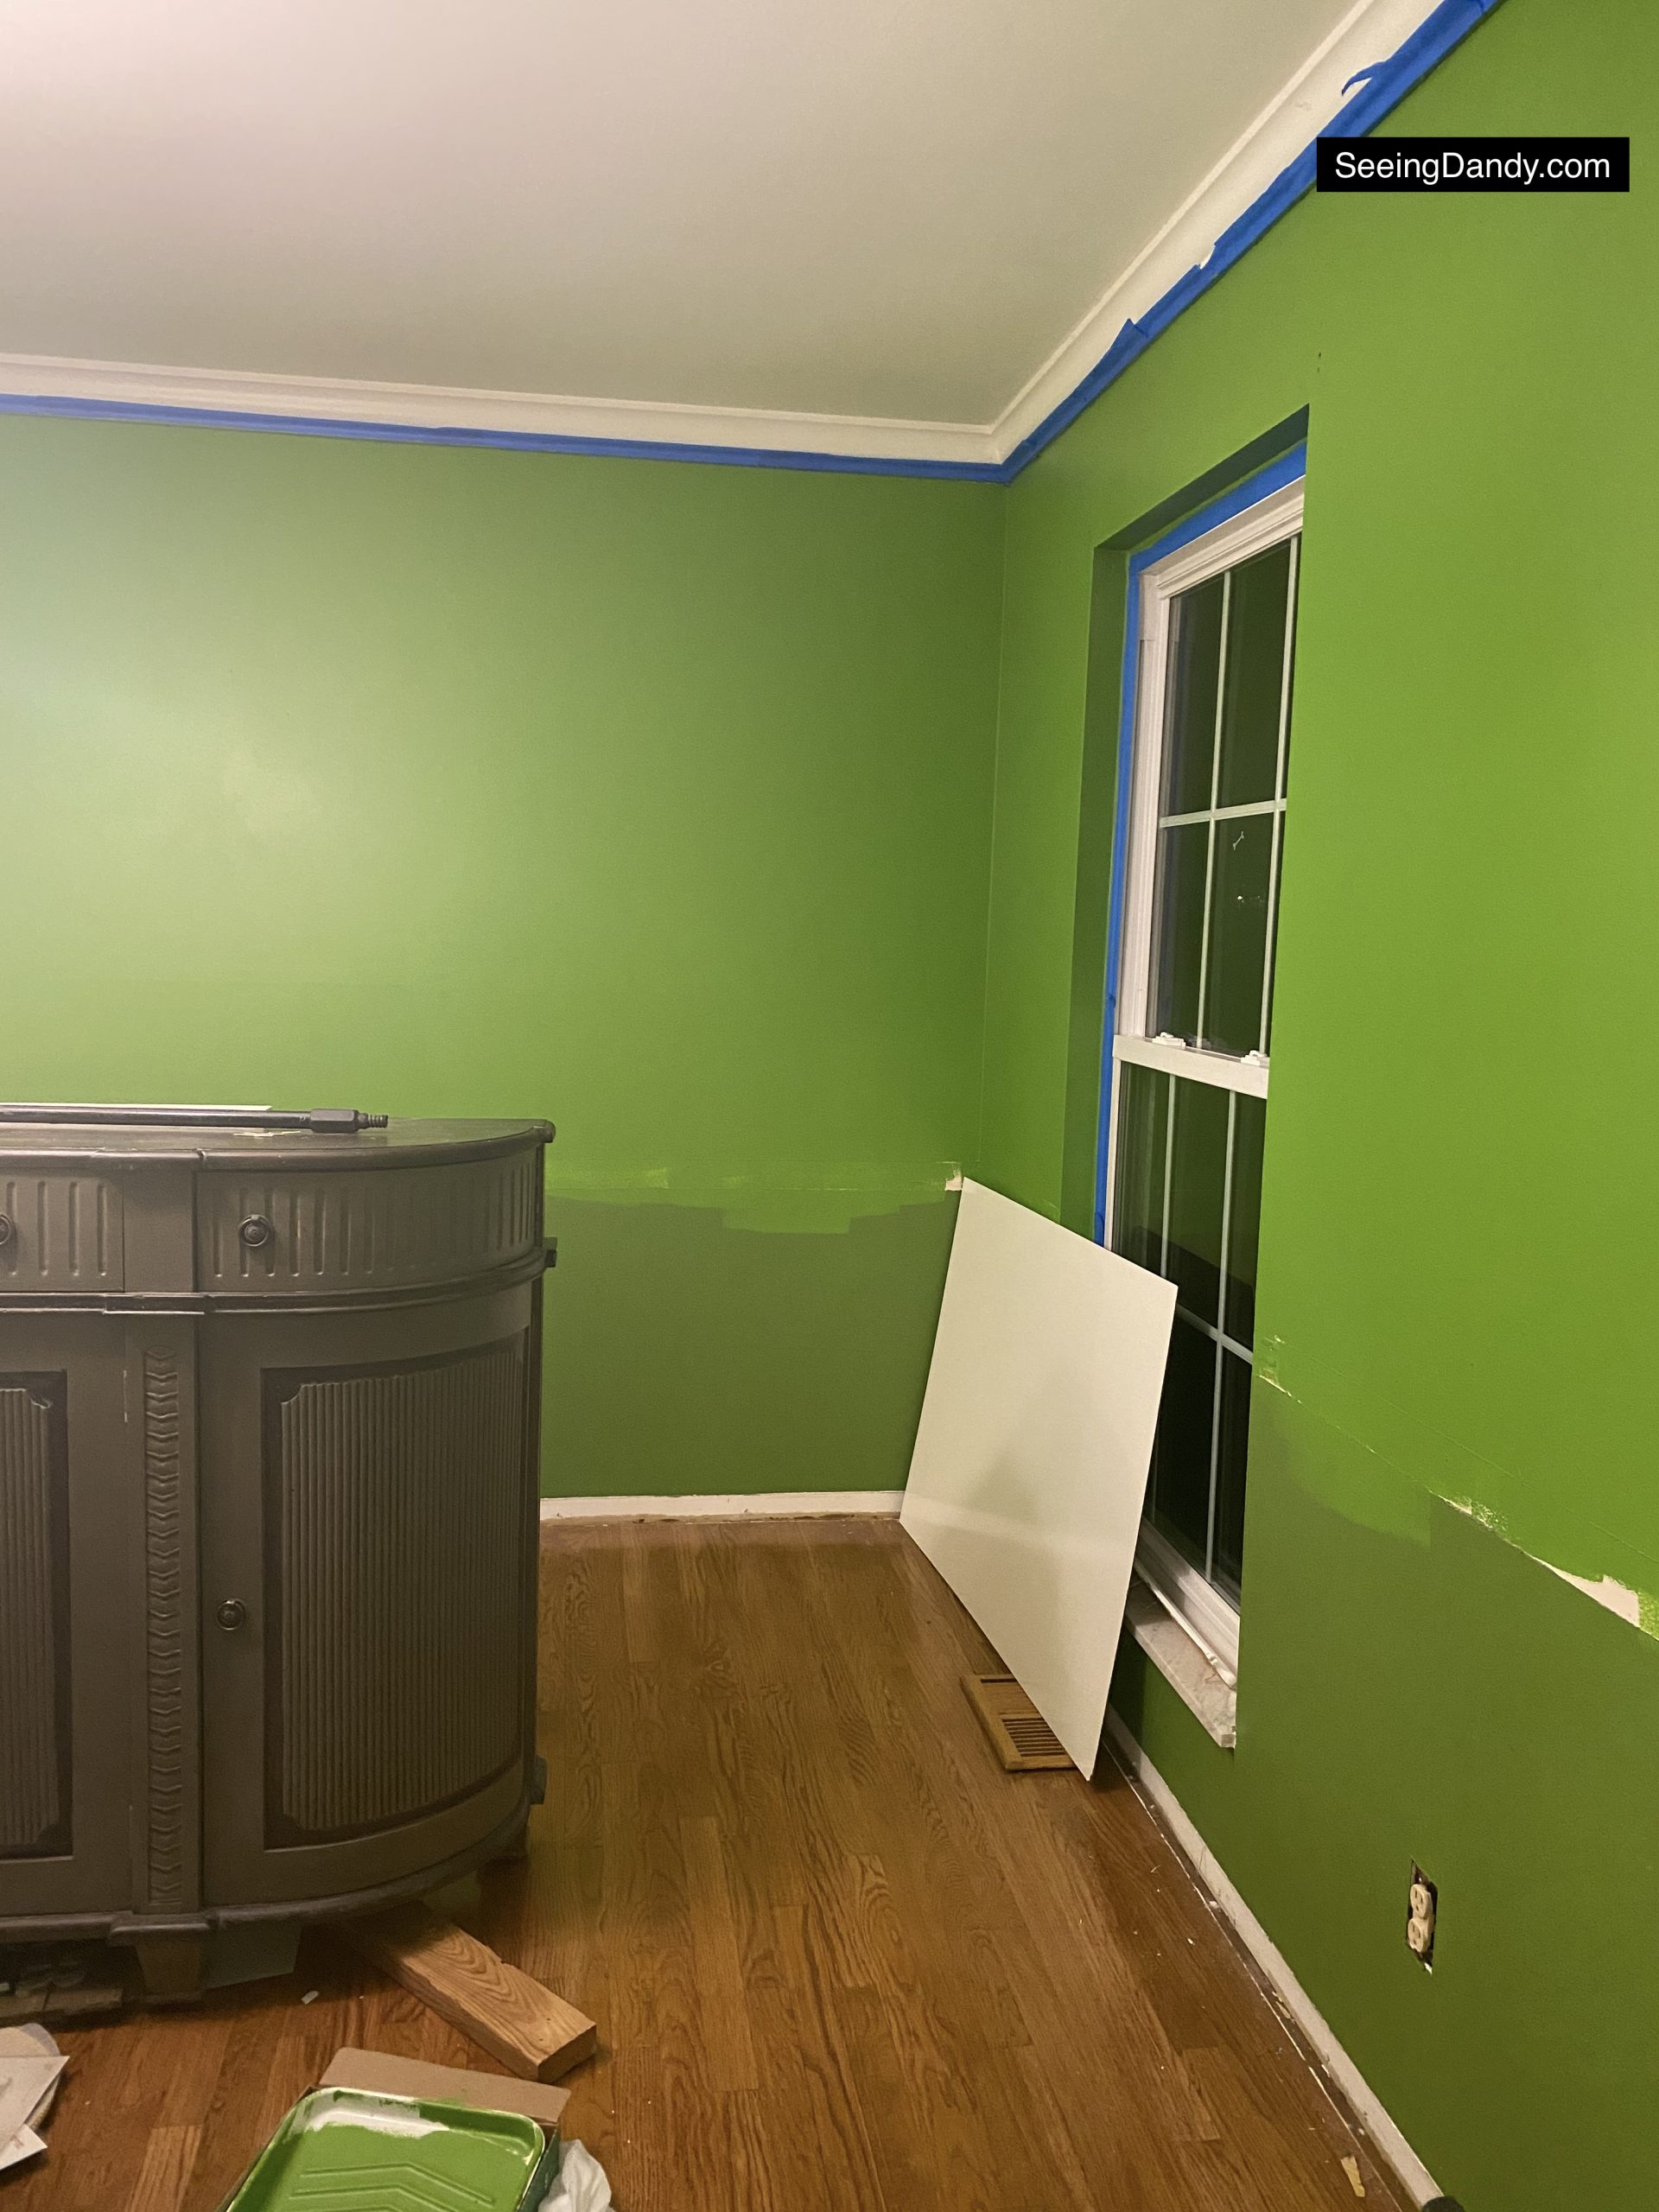 diy wainscoting, dining room wainscoting, kate spade green wall, behr paint, bold avocado green wall, square wainscoting, dining room decor, farmhouse style decorating, white crown molding, stash furniture farmhouse style sideboard, dining room hardwood floor